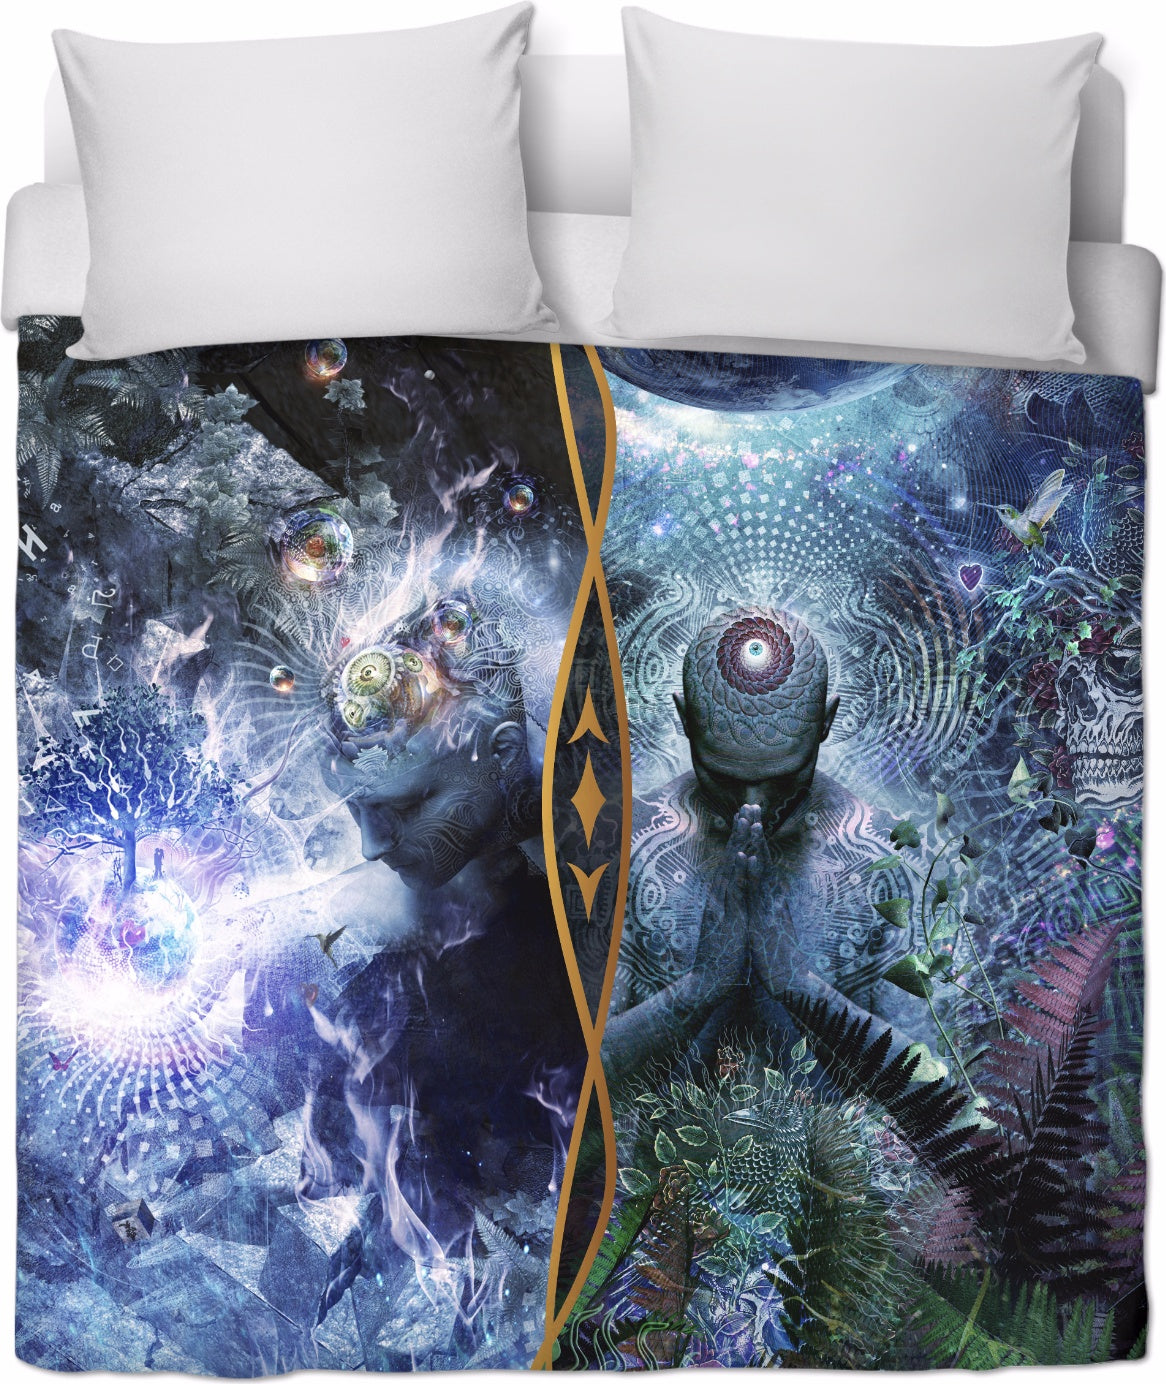 Special Edition 2 in 1 Gratitude Vibes - Duvet Cover